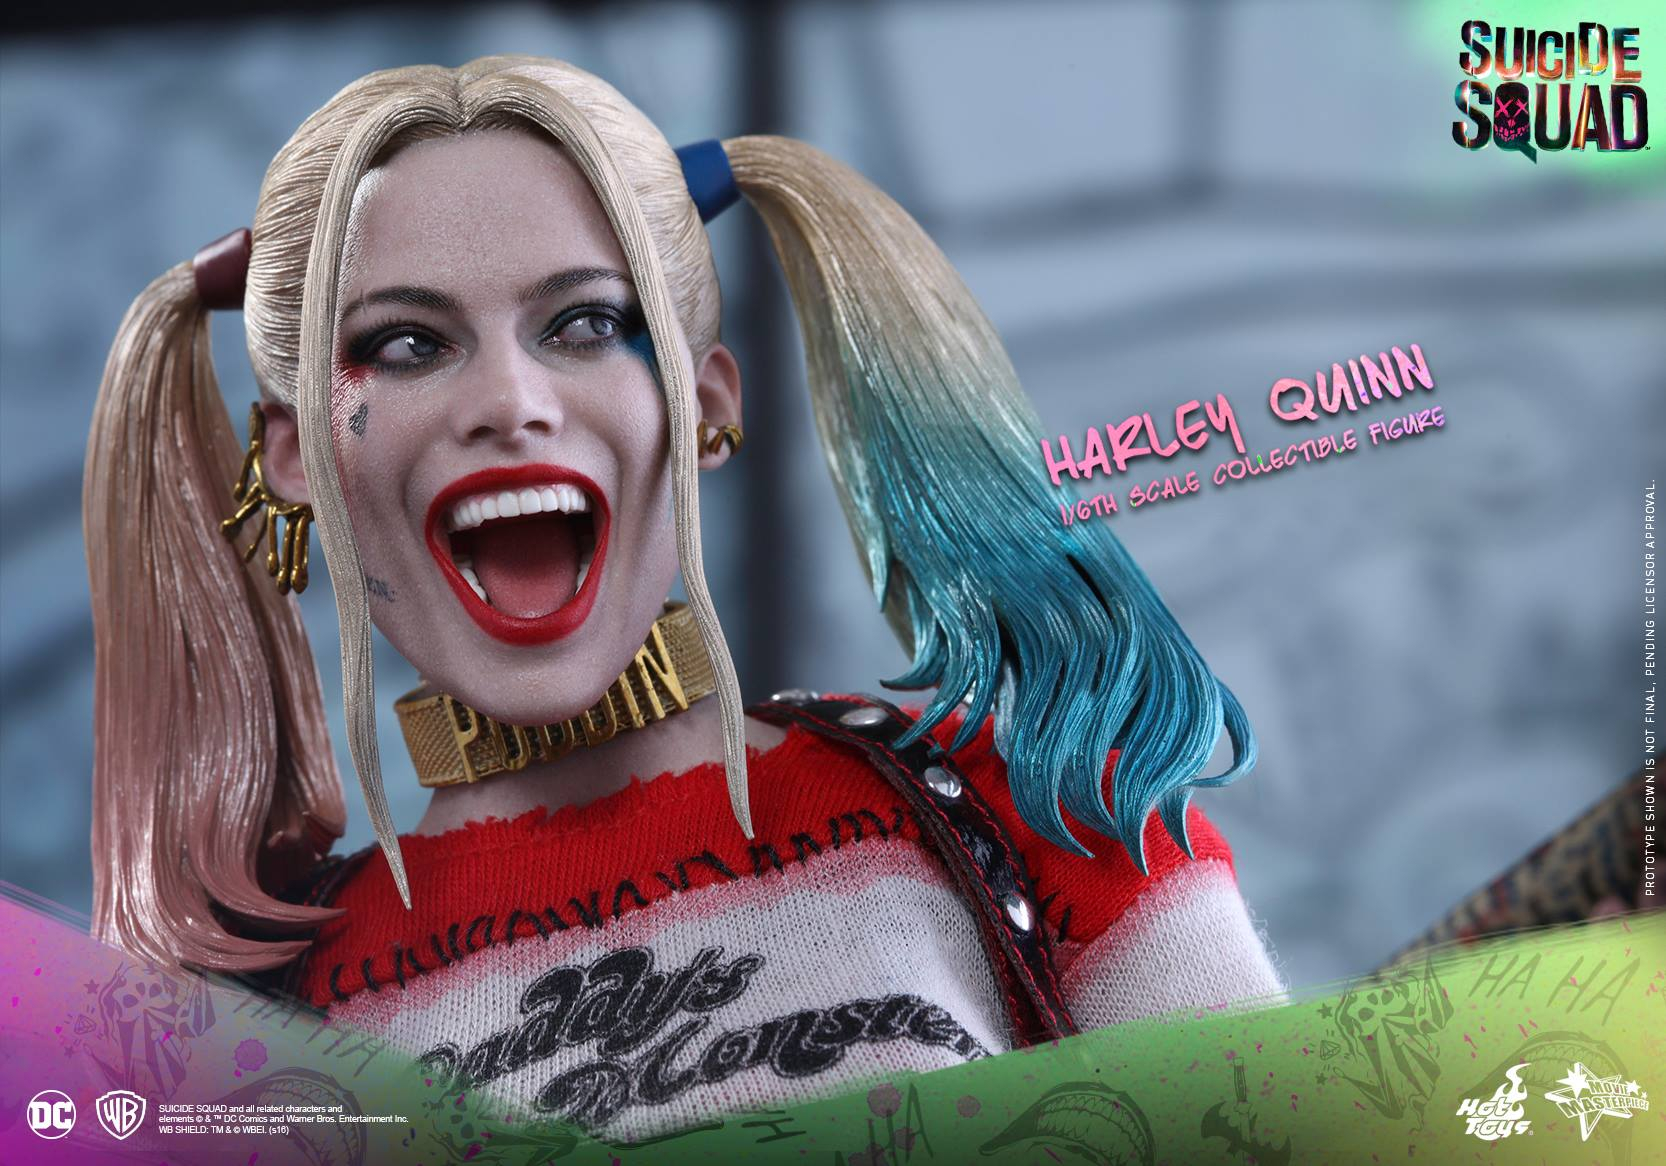 Hot-Toys-Suicide-Squad-Harley-Quinn-16